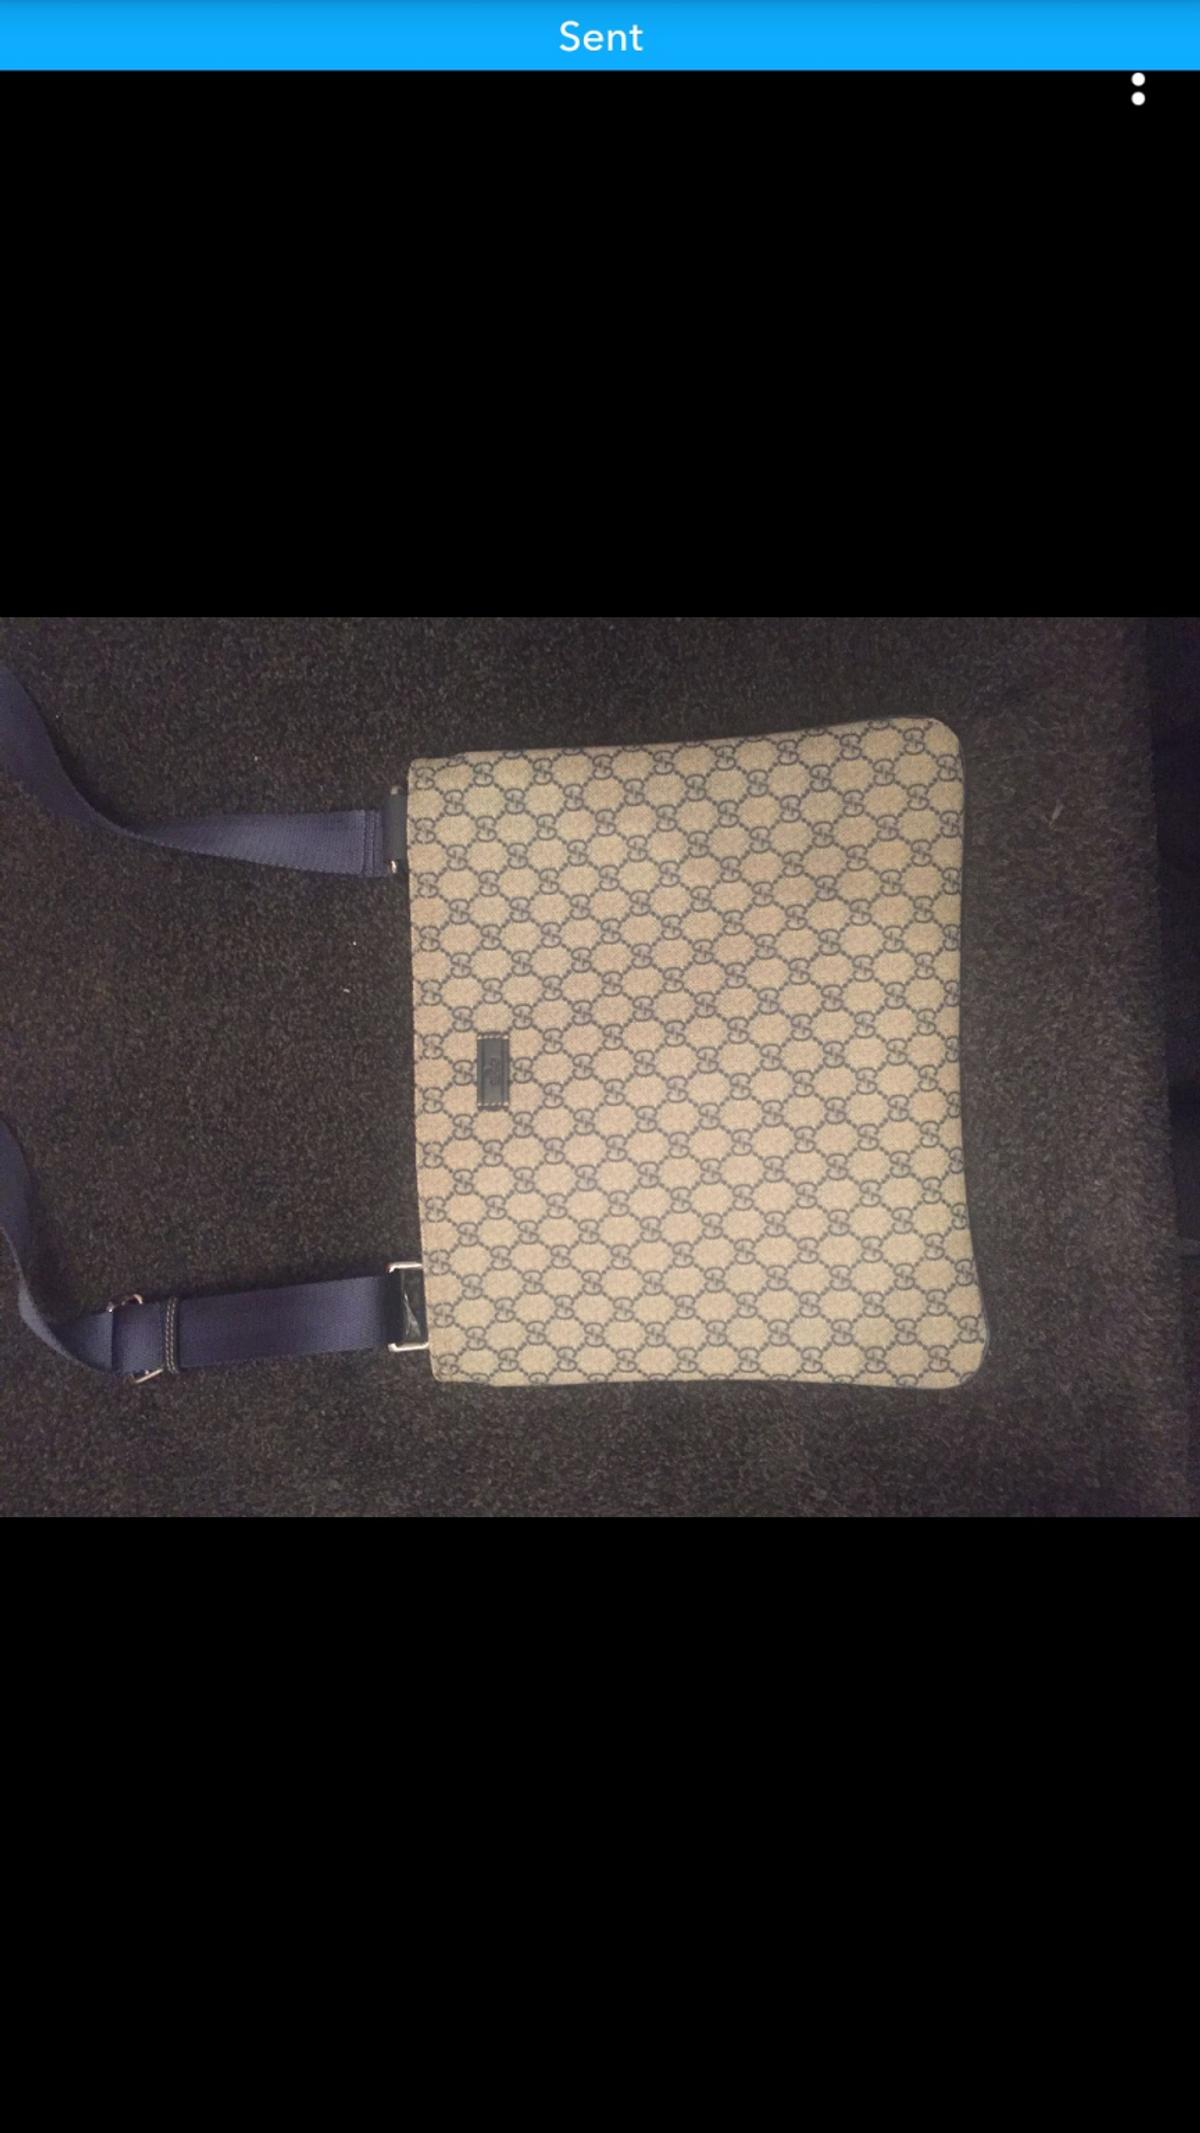 6ba38203c Gucci Men Bag (Open to offers and could swap) in M16 Manchester for ...